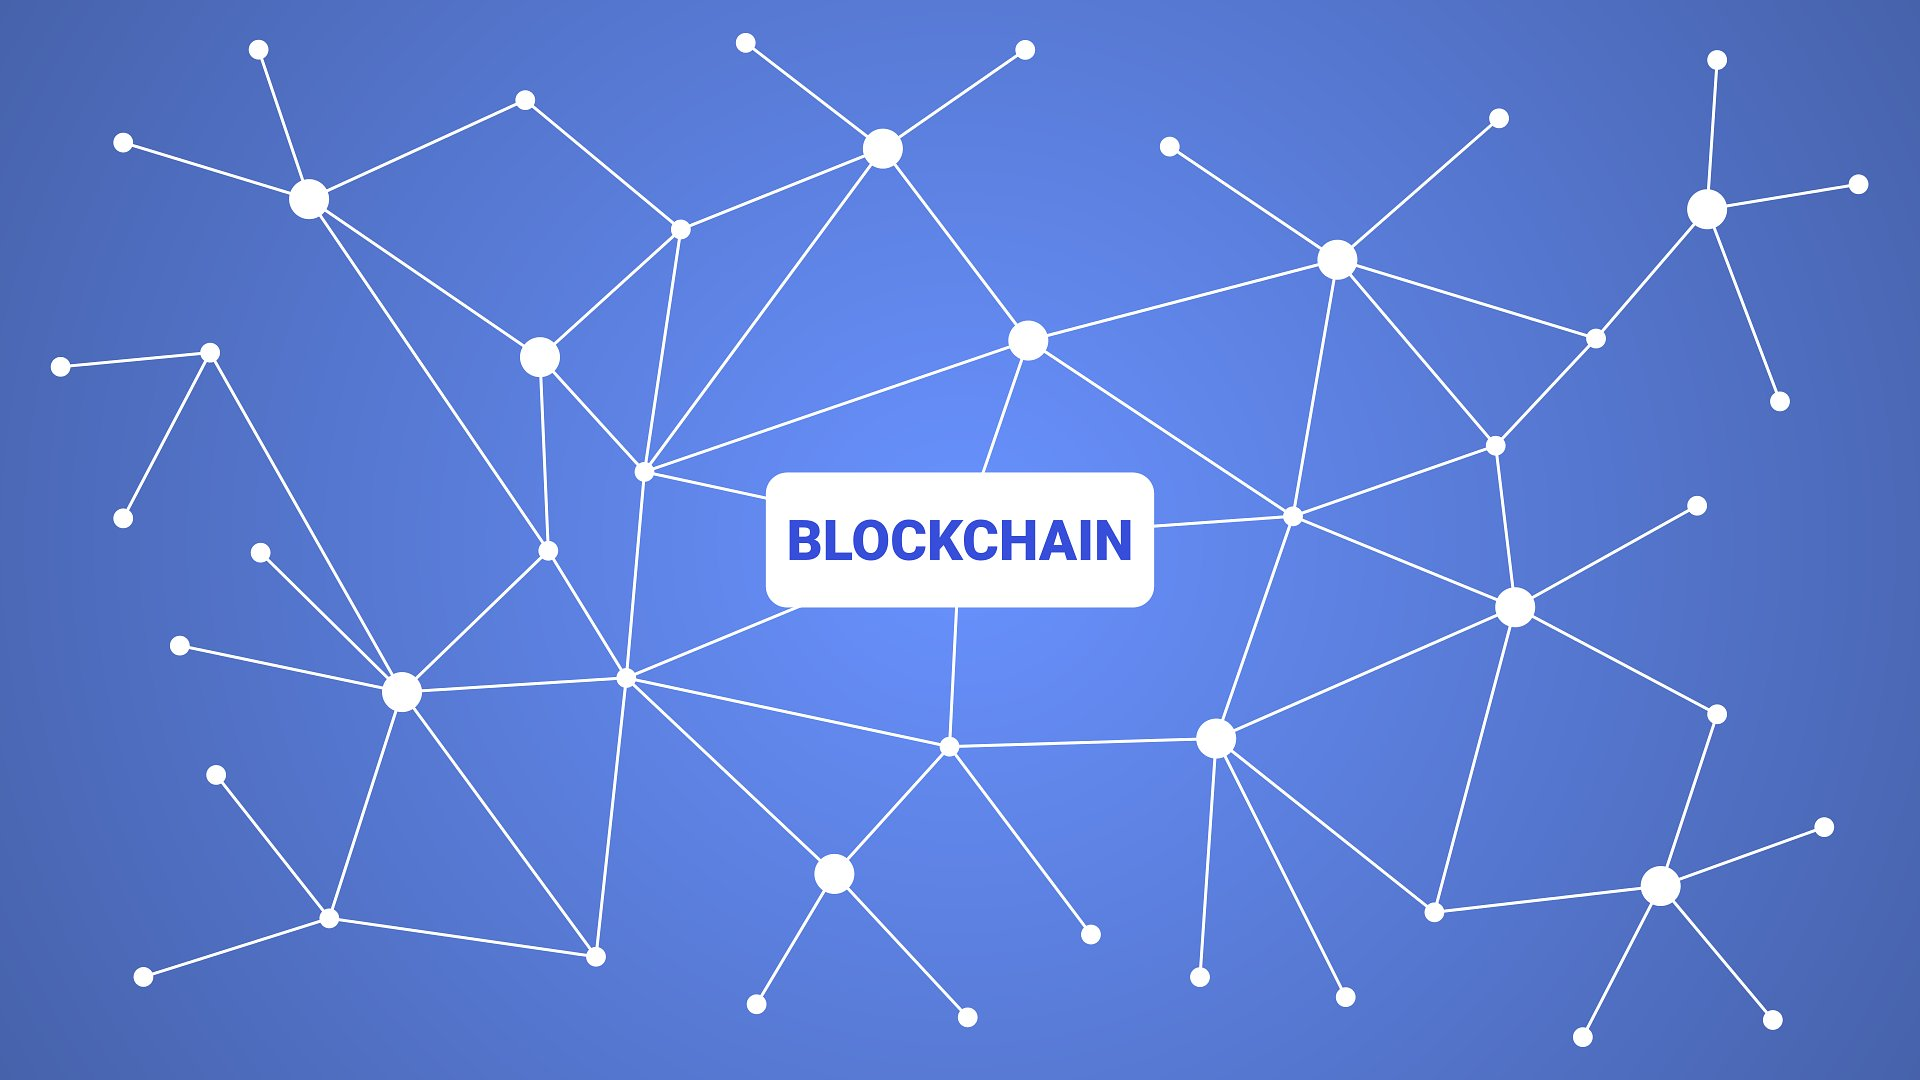 Blockchain: sharing data and breaking with traditional networks